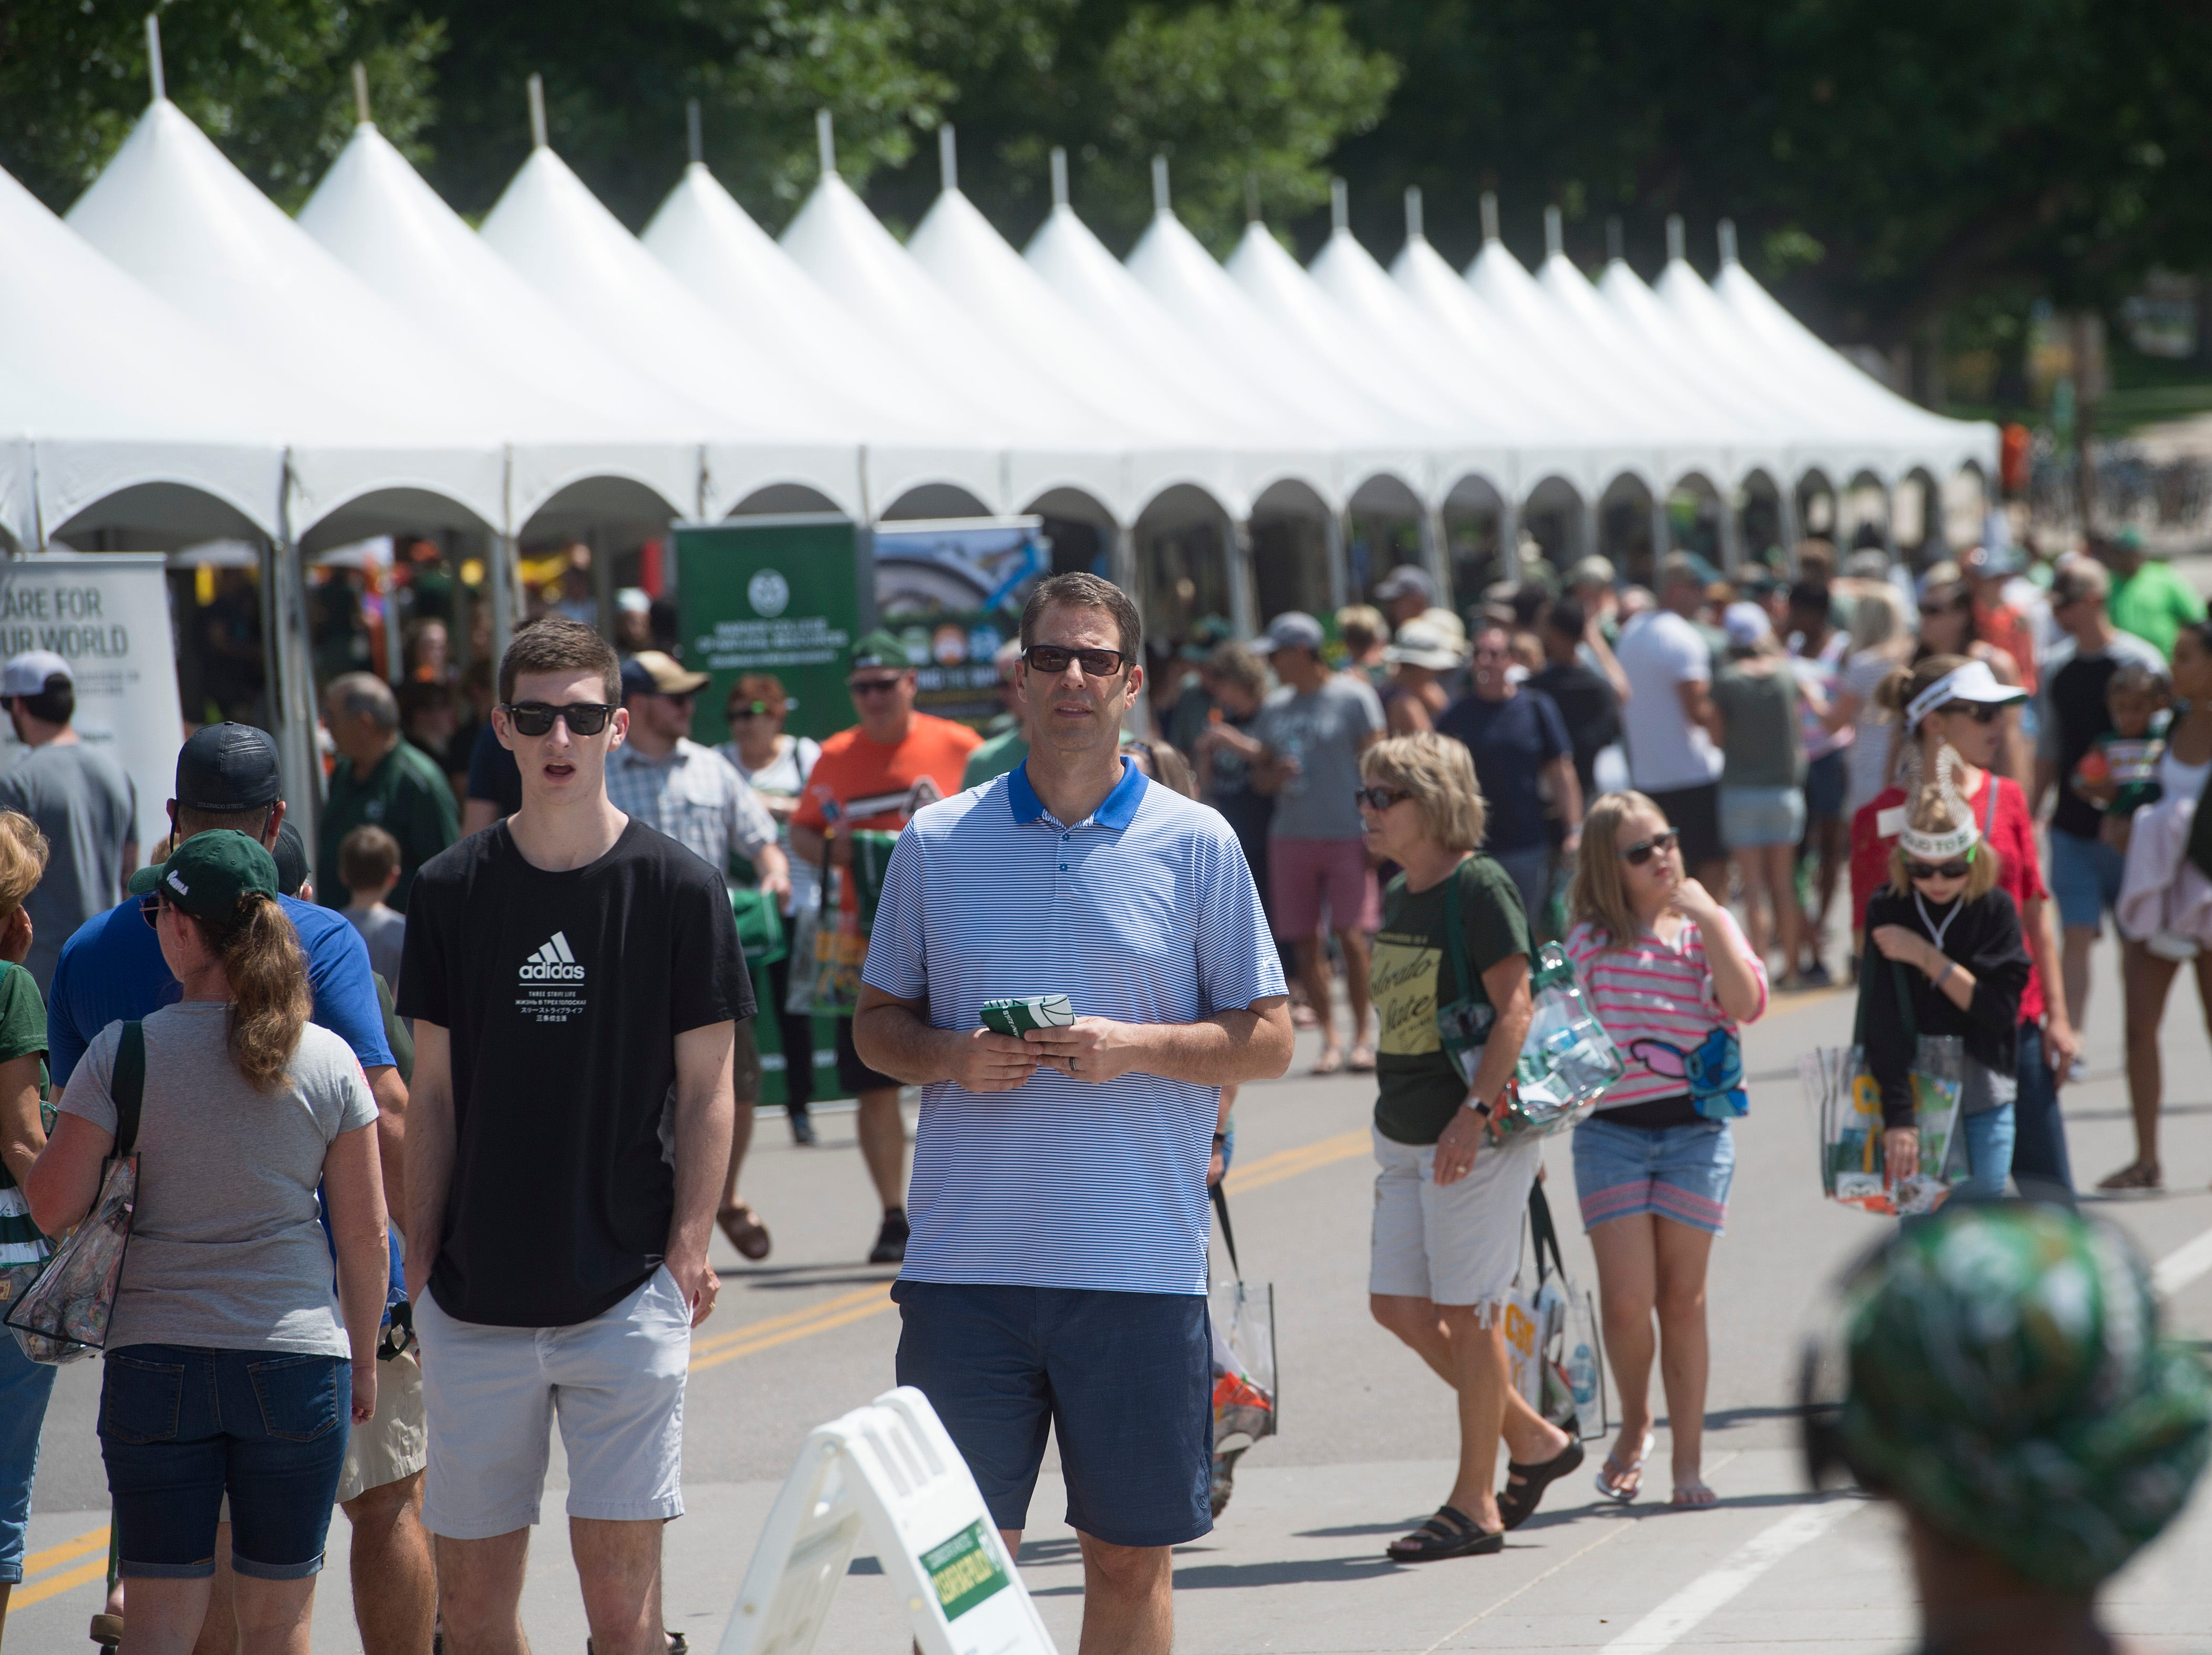 CSU fans visit vendors and booths during an open house and scrimmage hosted by the Rams outside of Canvas Stadium on Saturday, August 4, 2018.